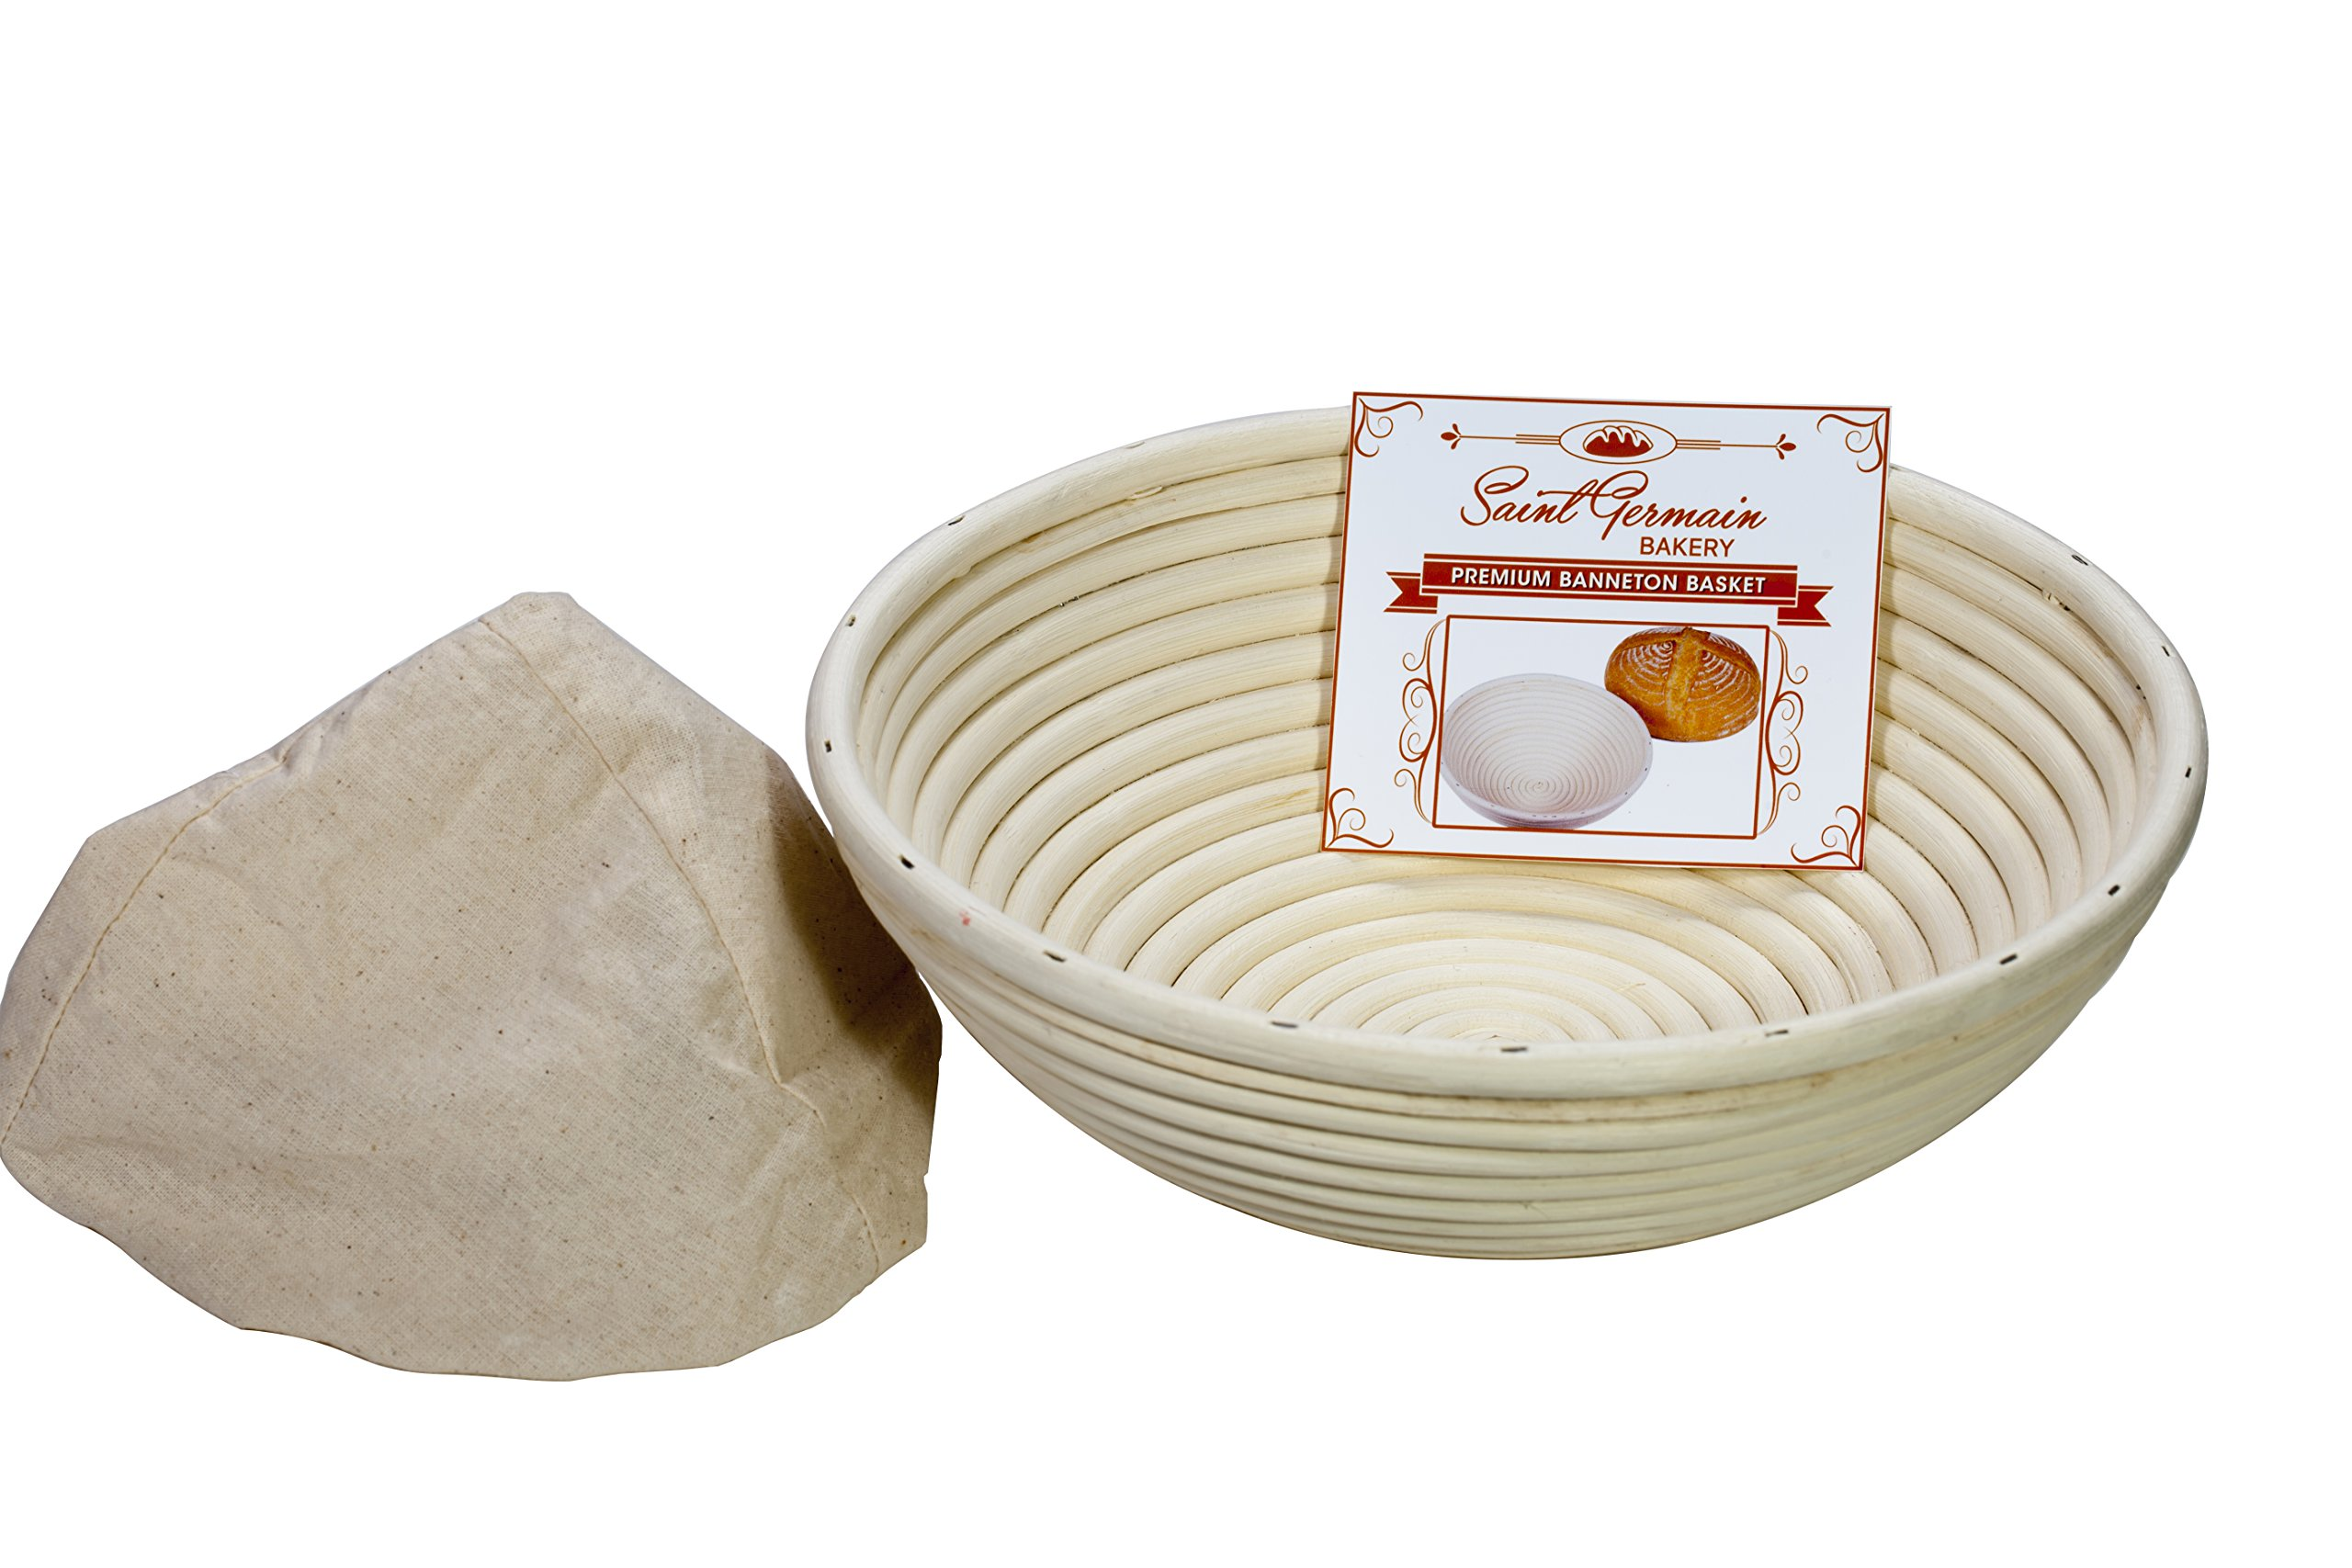 10 Inch Premium Round Bread Banneton Basket with Liner - Perfect Brotform Proofing Basket for Making Beautiful Bread by Saint Germain Bakery